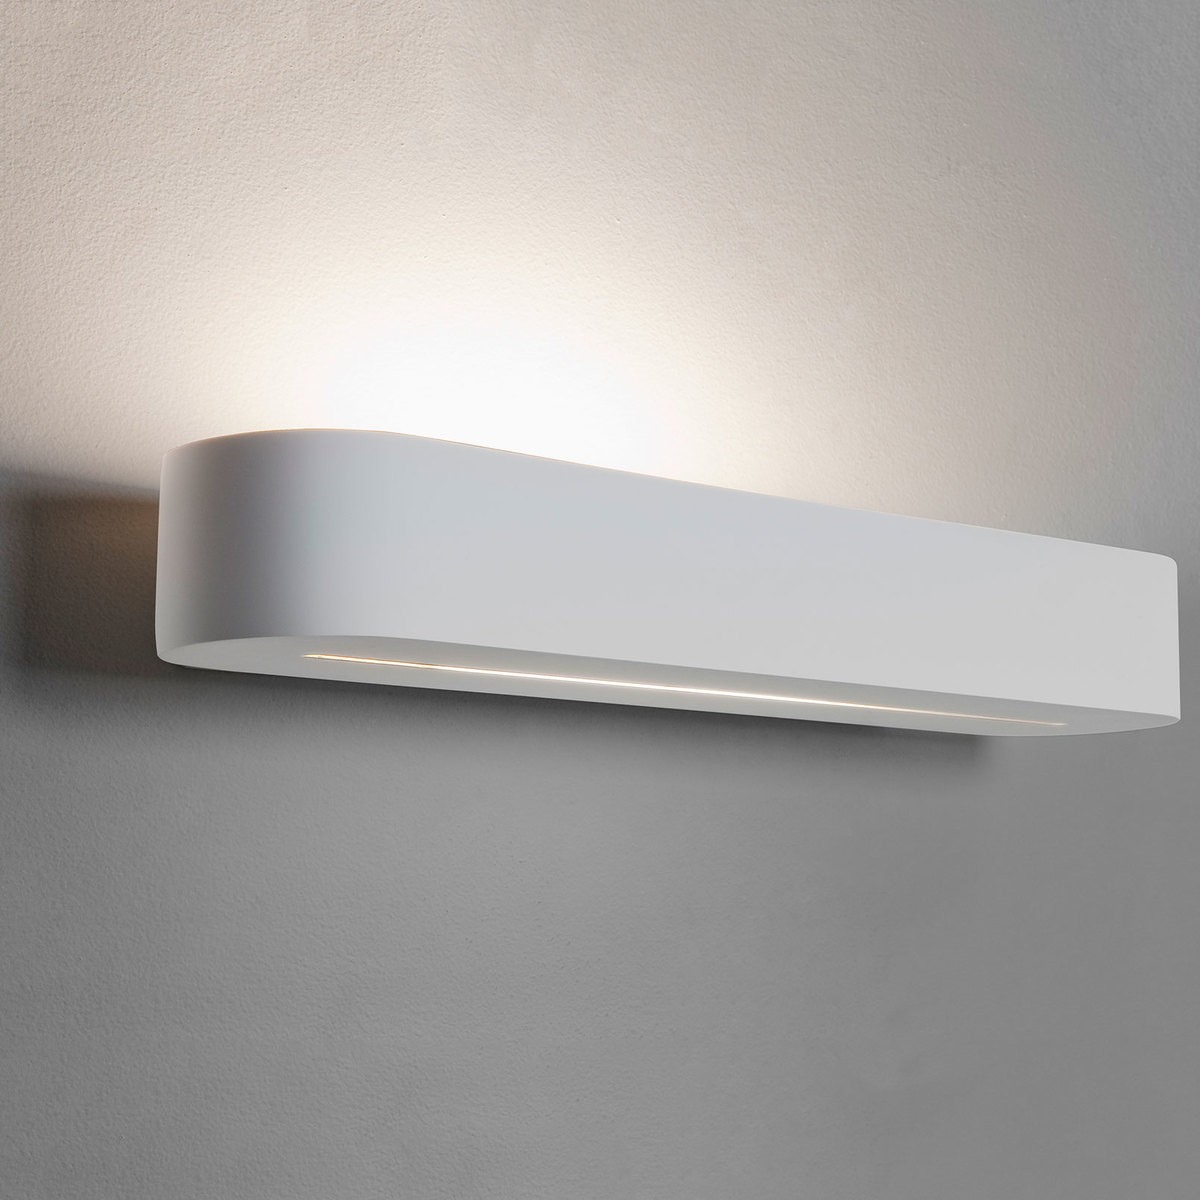 Astro Veneto 400 Plaster Wall Light at UK Electrical Supplies.